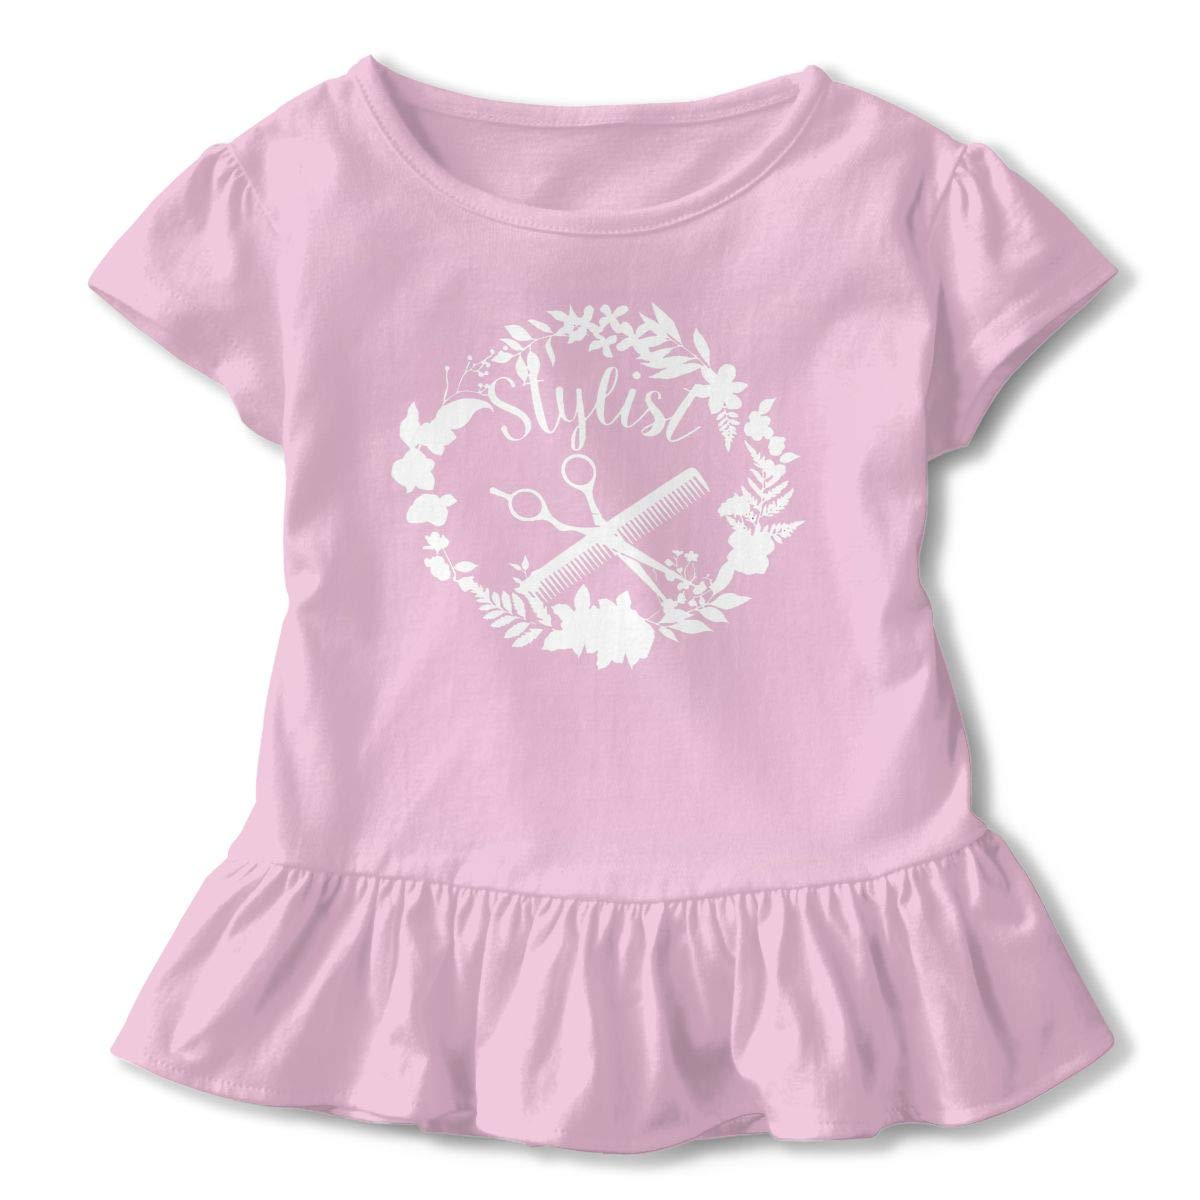 Louise Morrison Hair Stylist Toddler Girls Cute Animal Floral Letter Print at Front Short Sleeve Casual Summer Baby Children Tunic Dress Shirt Pink